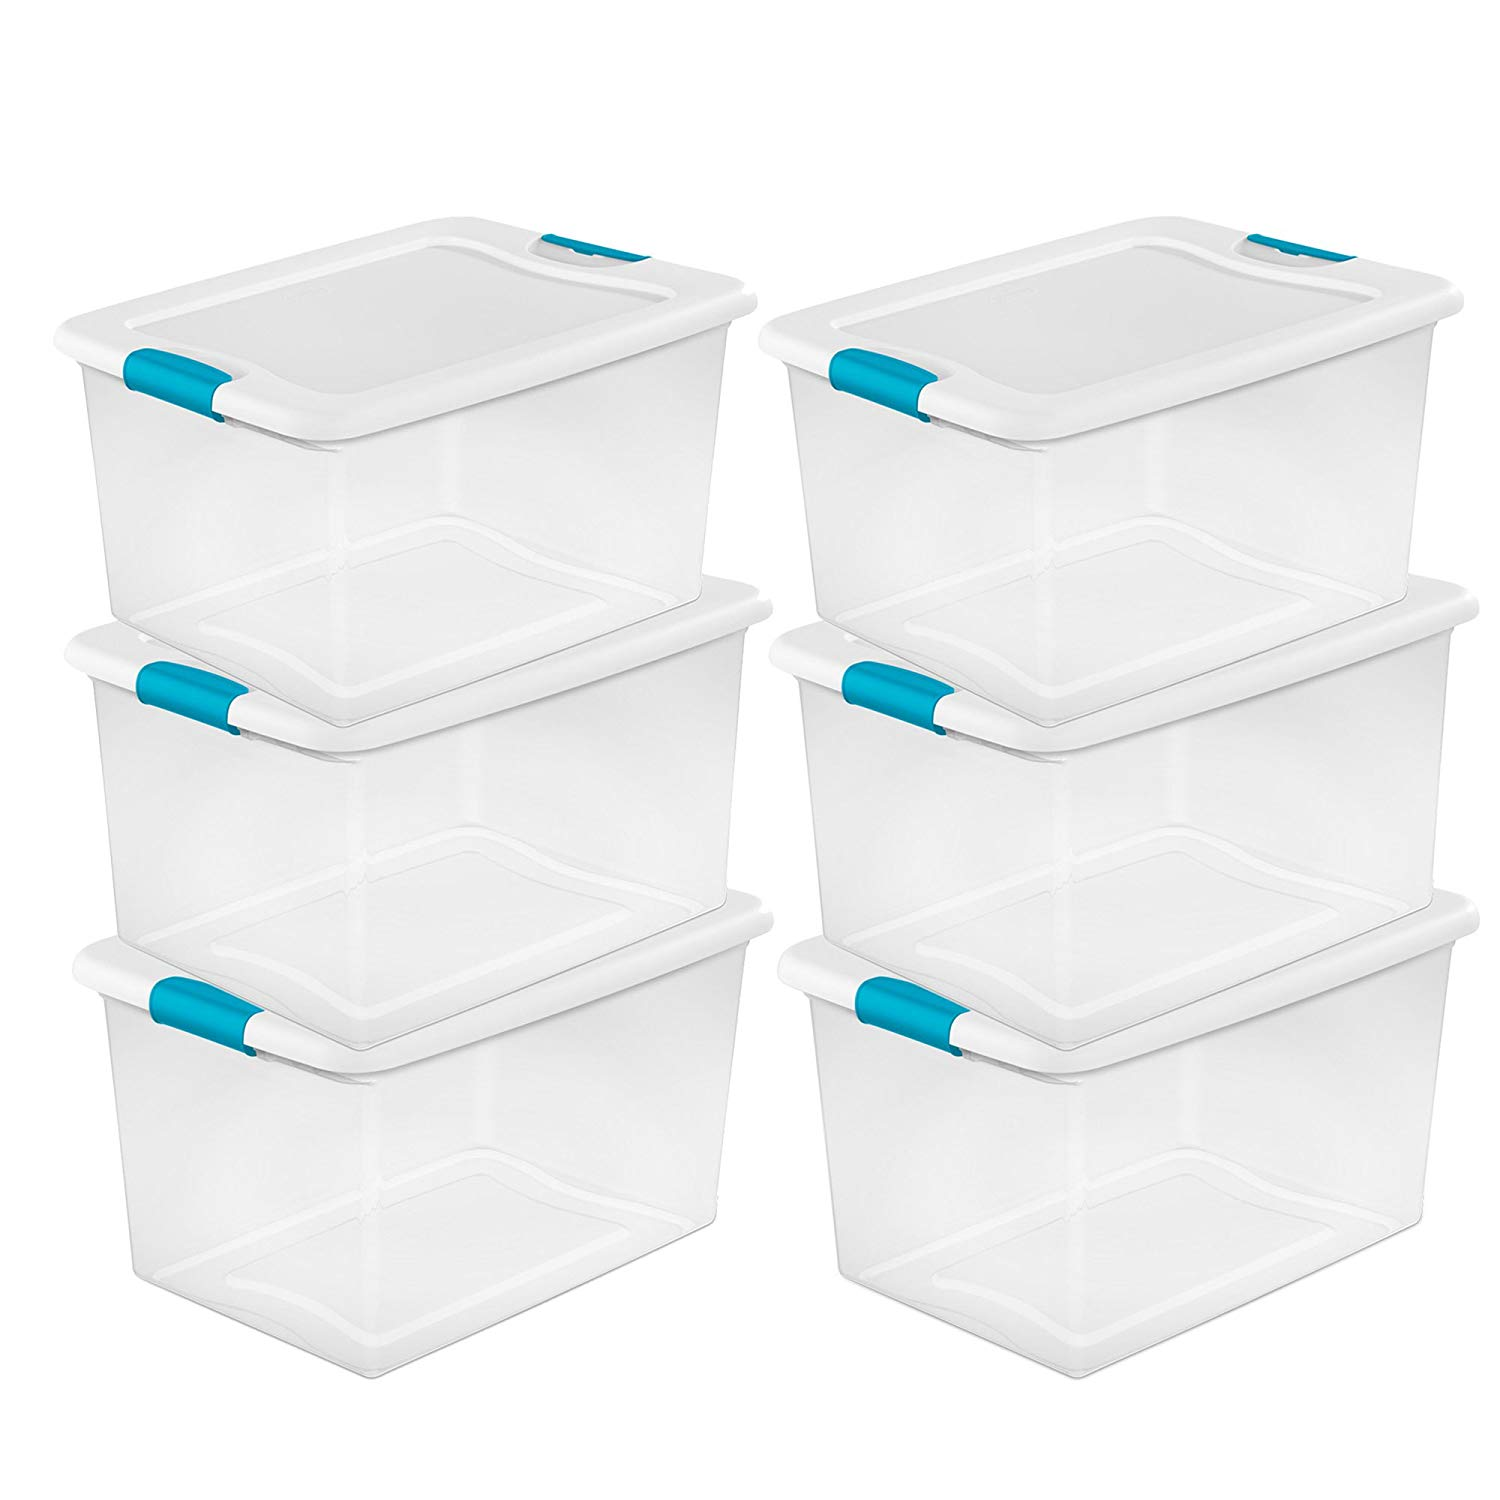 MRT SUPPLY 64 Quart Clear Plastic Storage Boxes Bins Totes w/Latches (6 Pack) Ebook